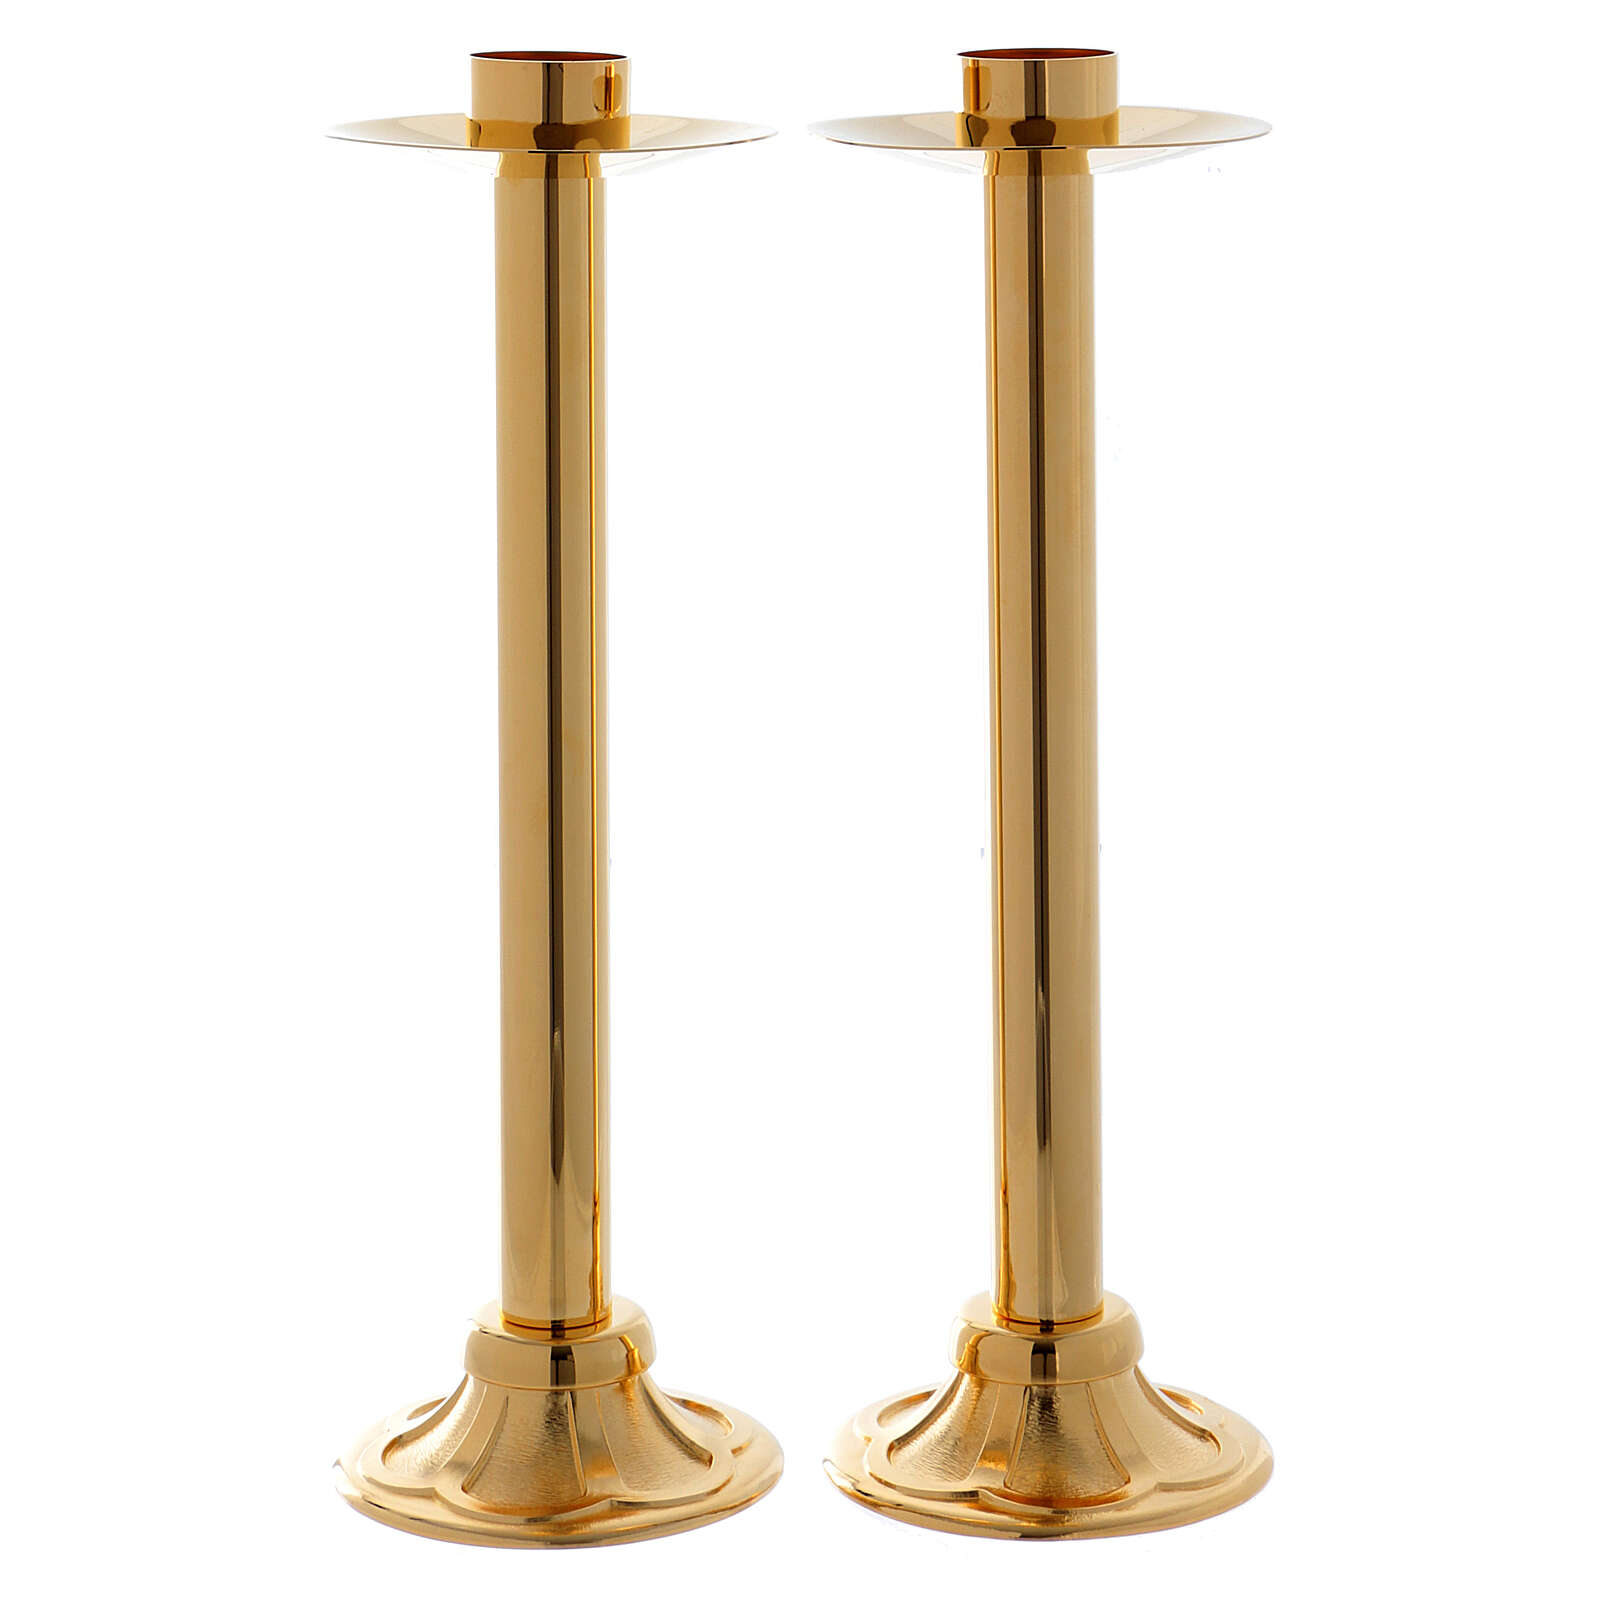 Processional candlestick set 15 in with socket of 1 1/2 in diameter 3